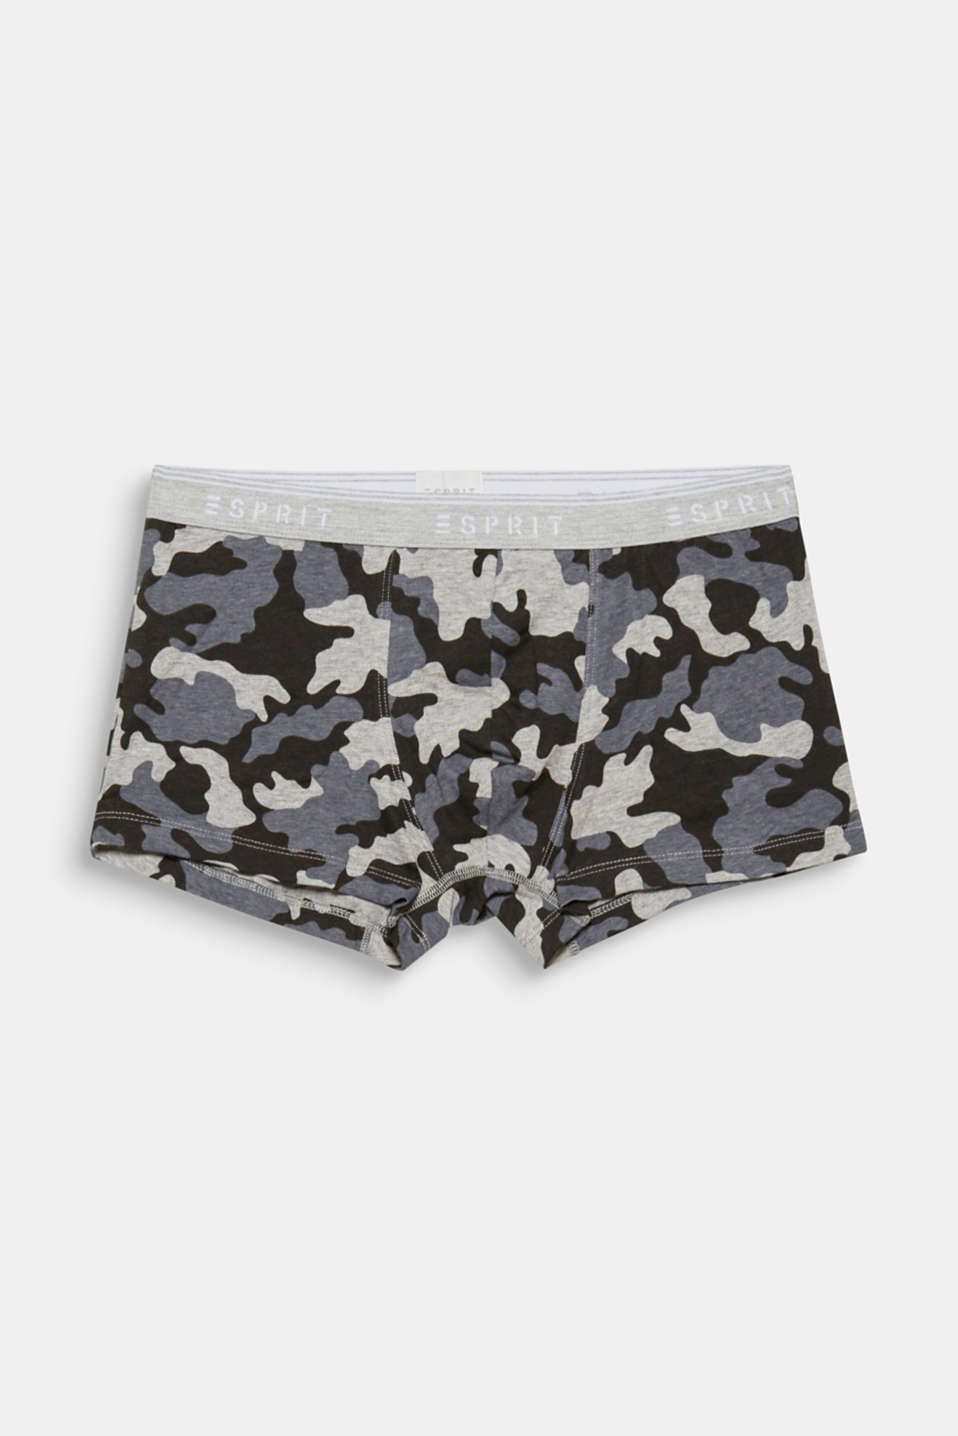 Esprit - Hipster shorts with a camouflage print